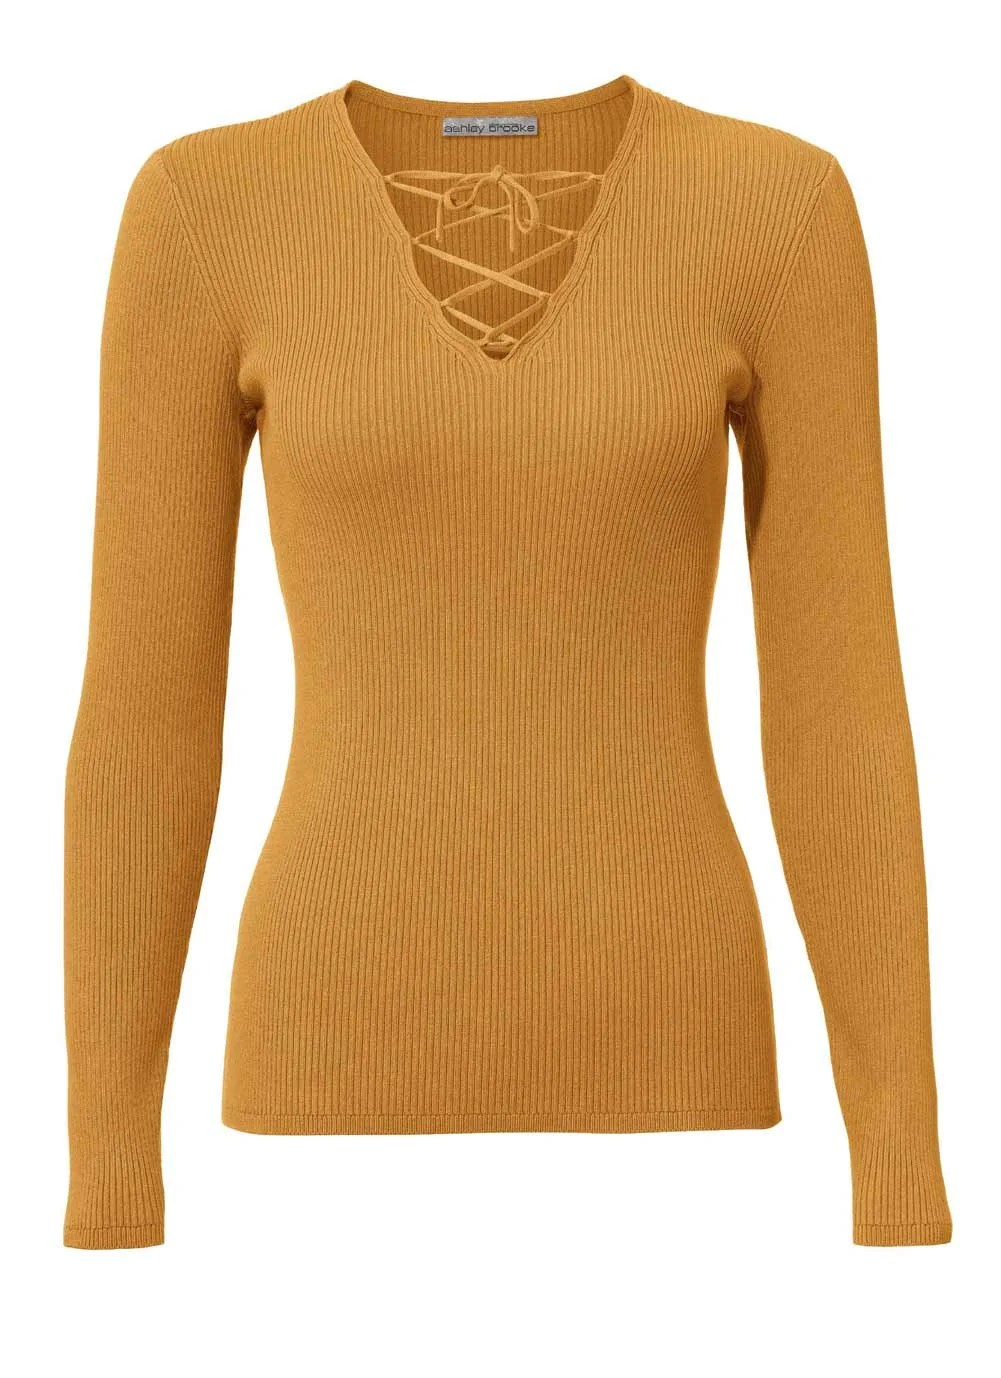 102.543 ASHLEY BROOKE Damen Designer-Rippenpullover Gelb